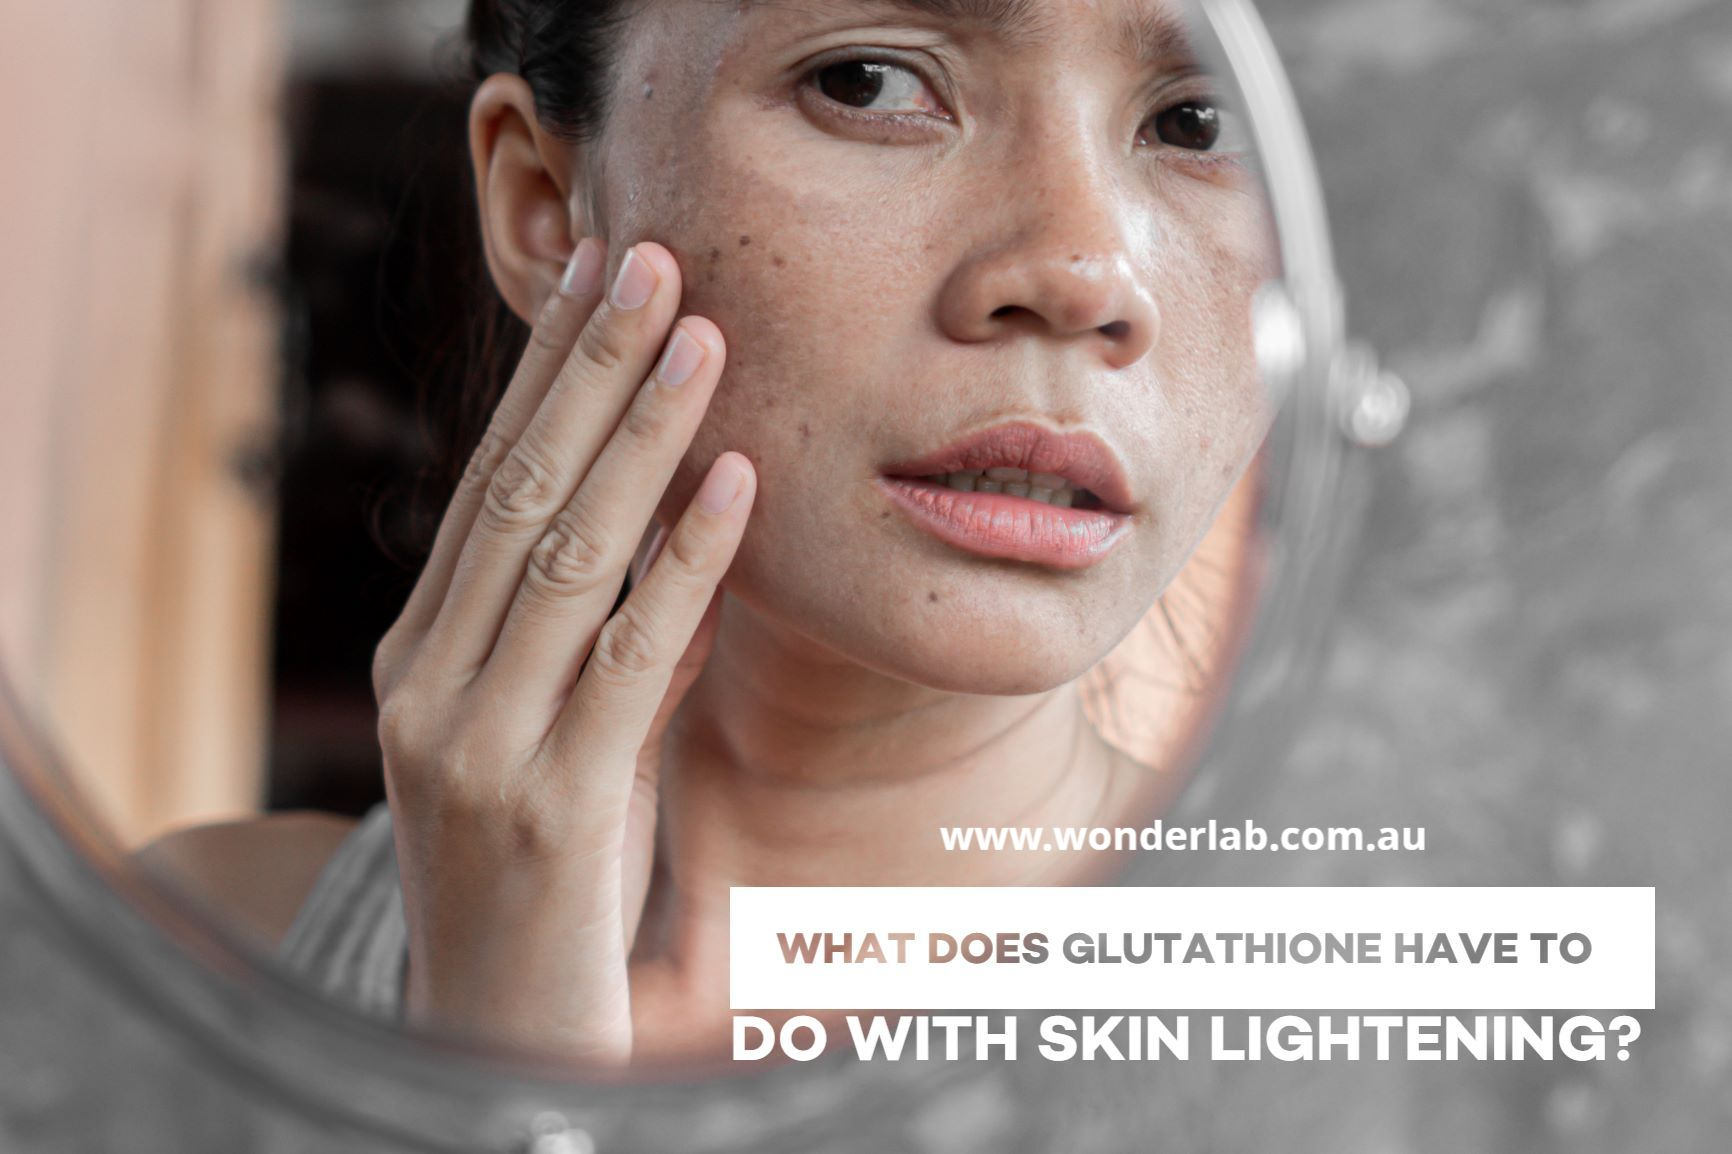 What does glutathione have to do with skincare